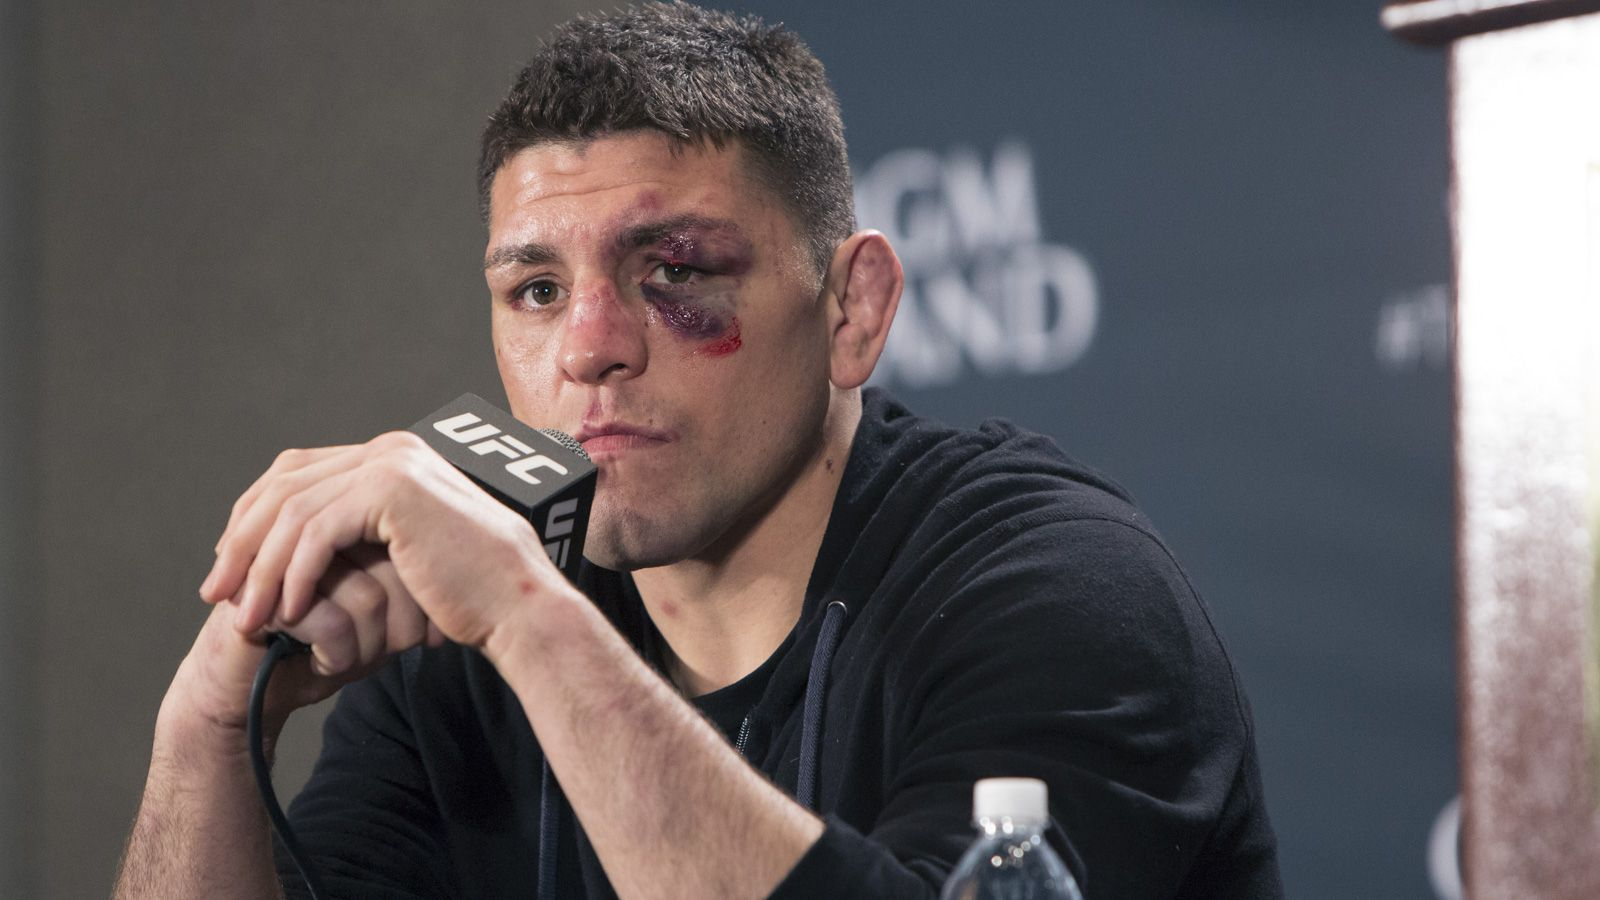 how tall is nick diaz